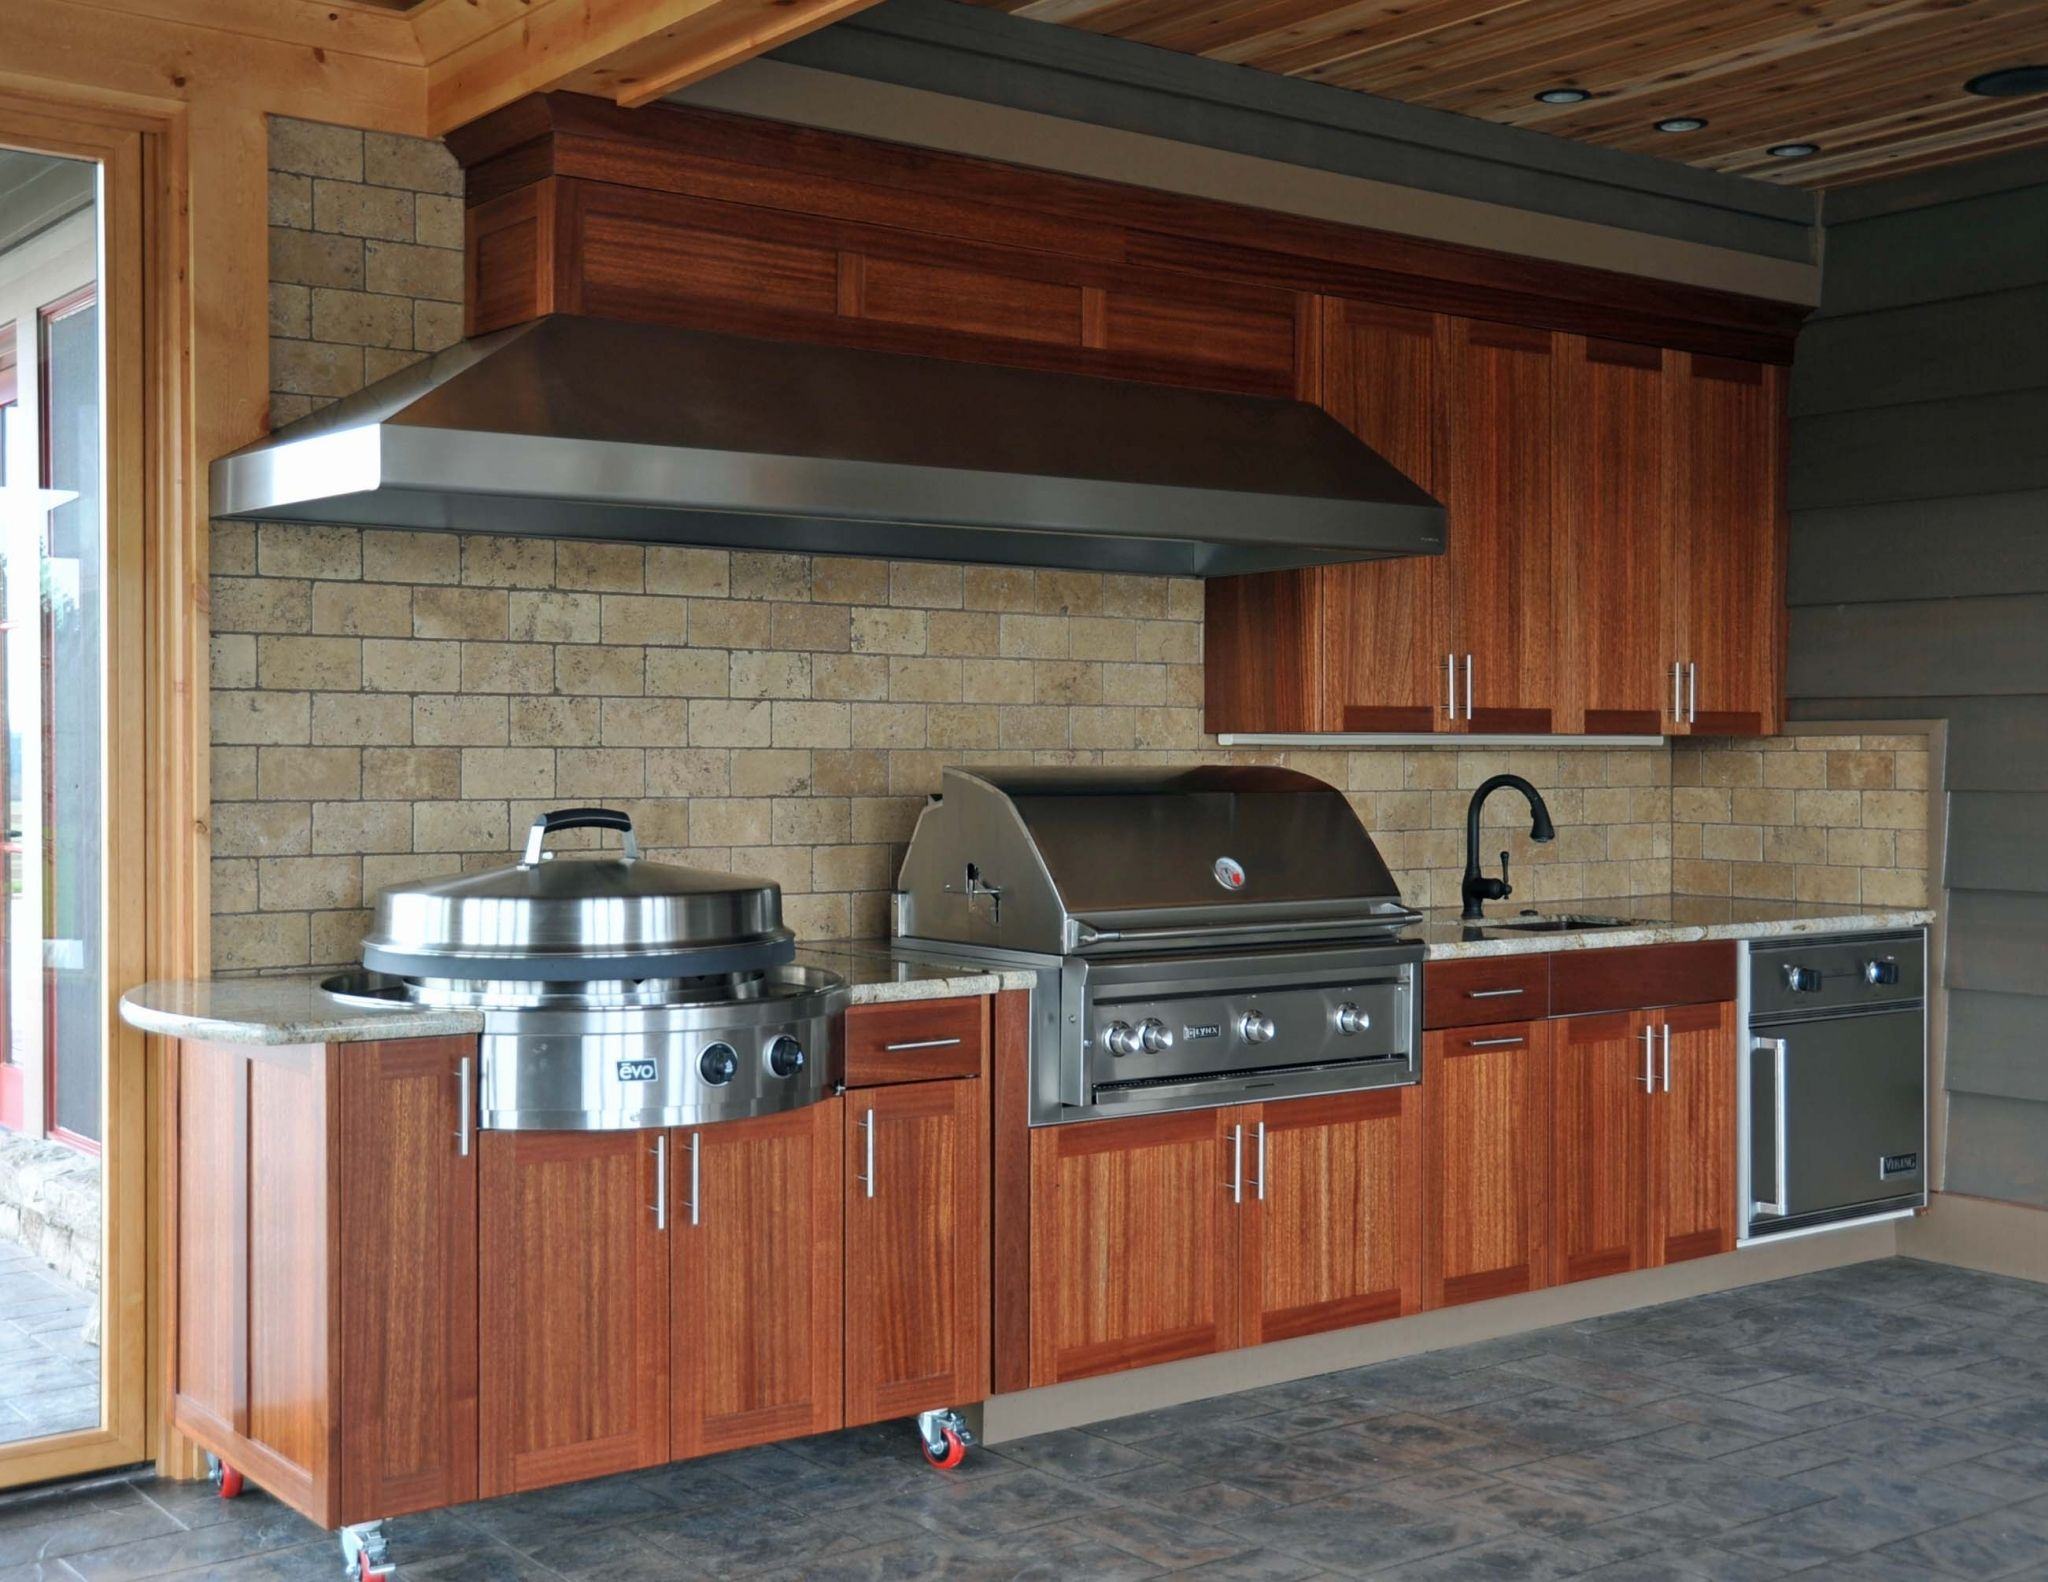 Polymer Cabinets For Outdoor Kitchens Favorite Interior Paint Colors Check More At Http Outdoor Kitchen Cabinets Outdoor Kitchen Appliances Outdoor Kitchen